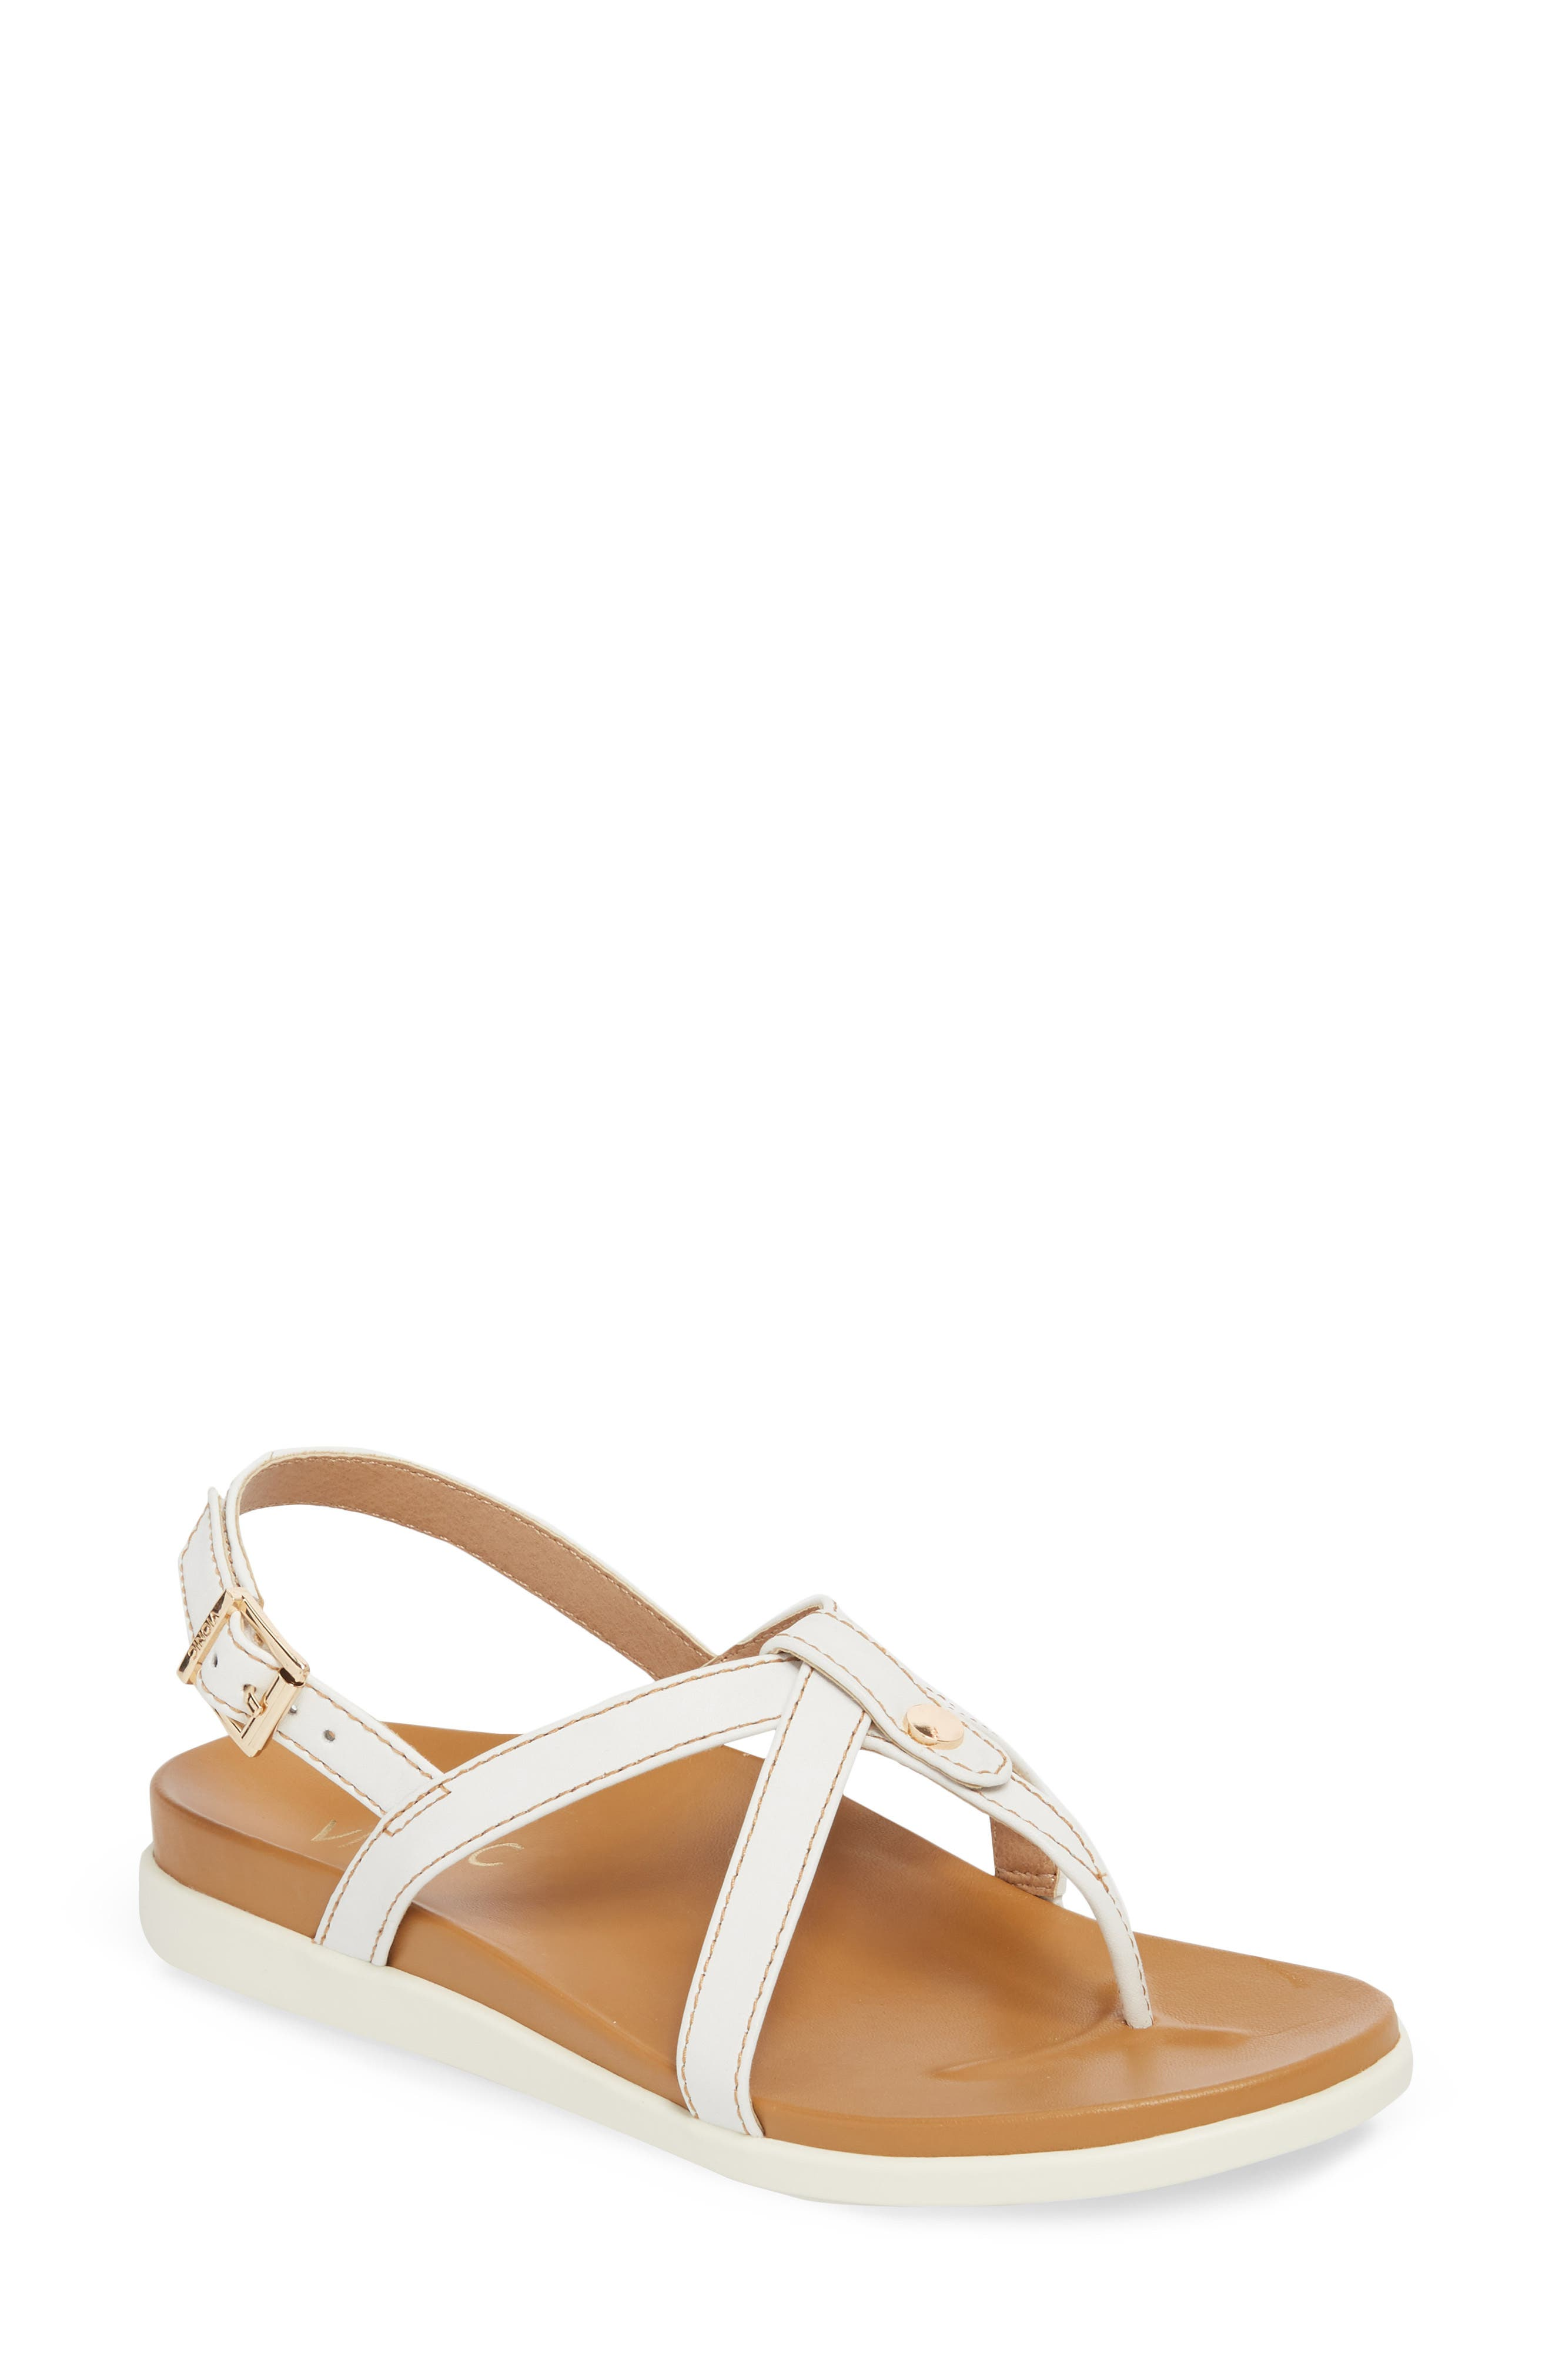 Veranda Sandal,                         Main,                         color, White Leather